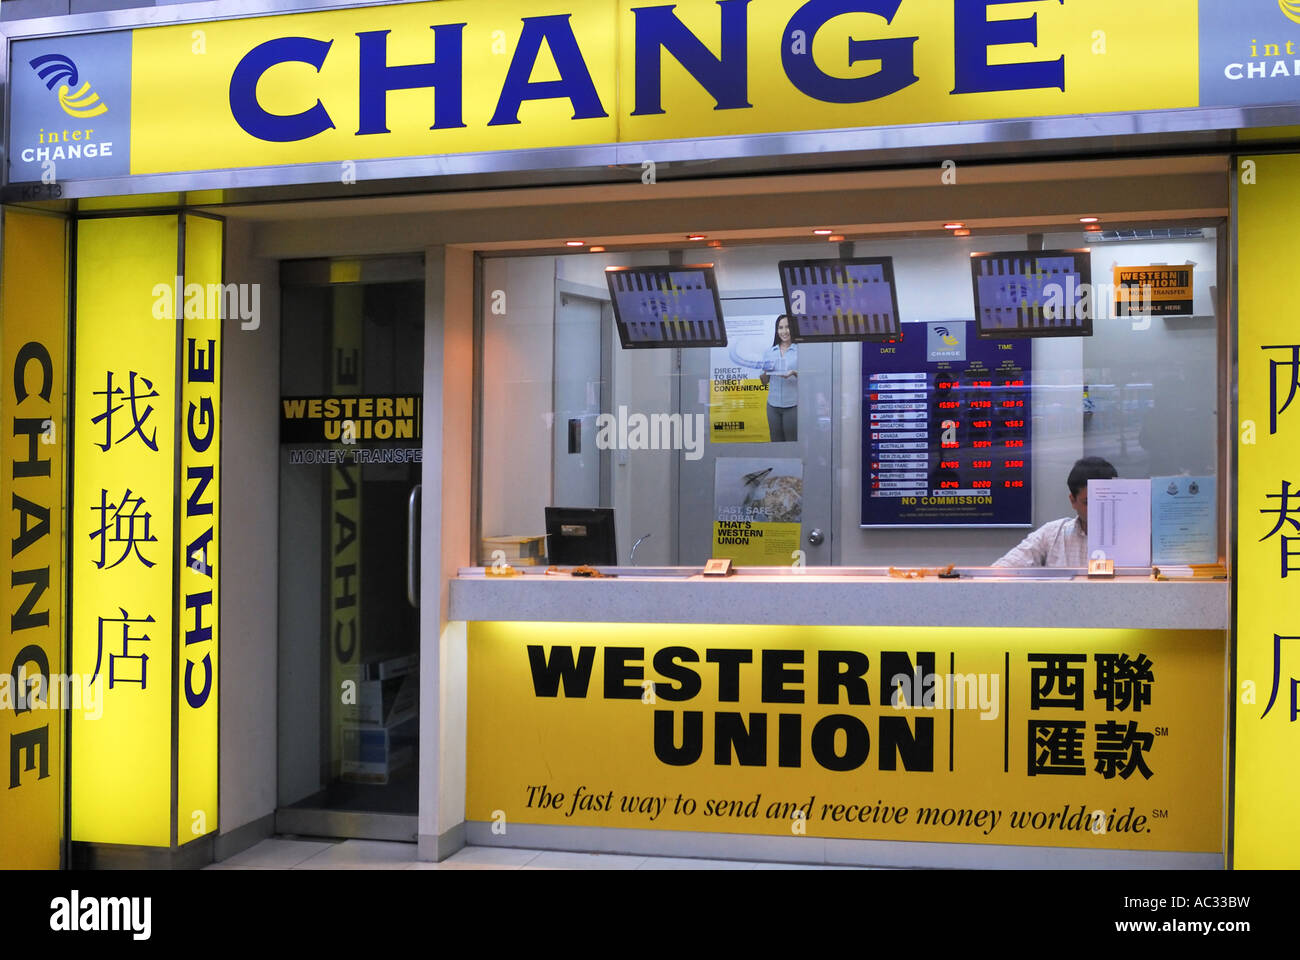 Exchange western union office in photos & exchange western union